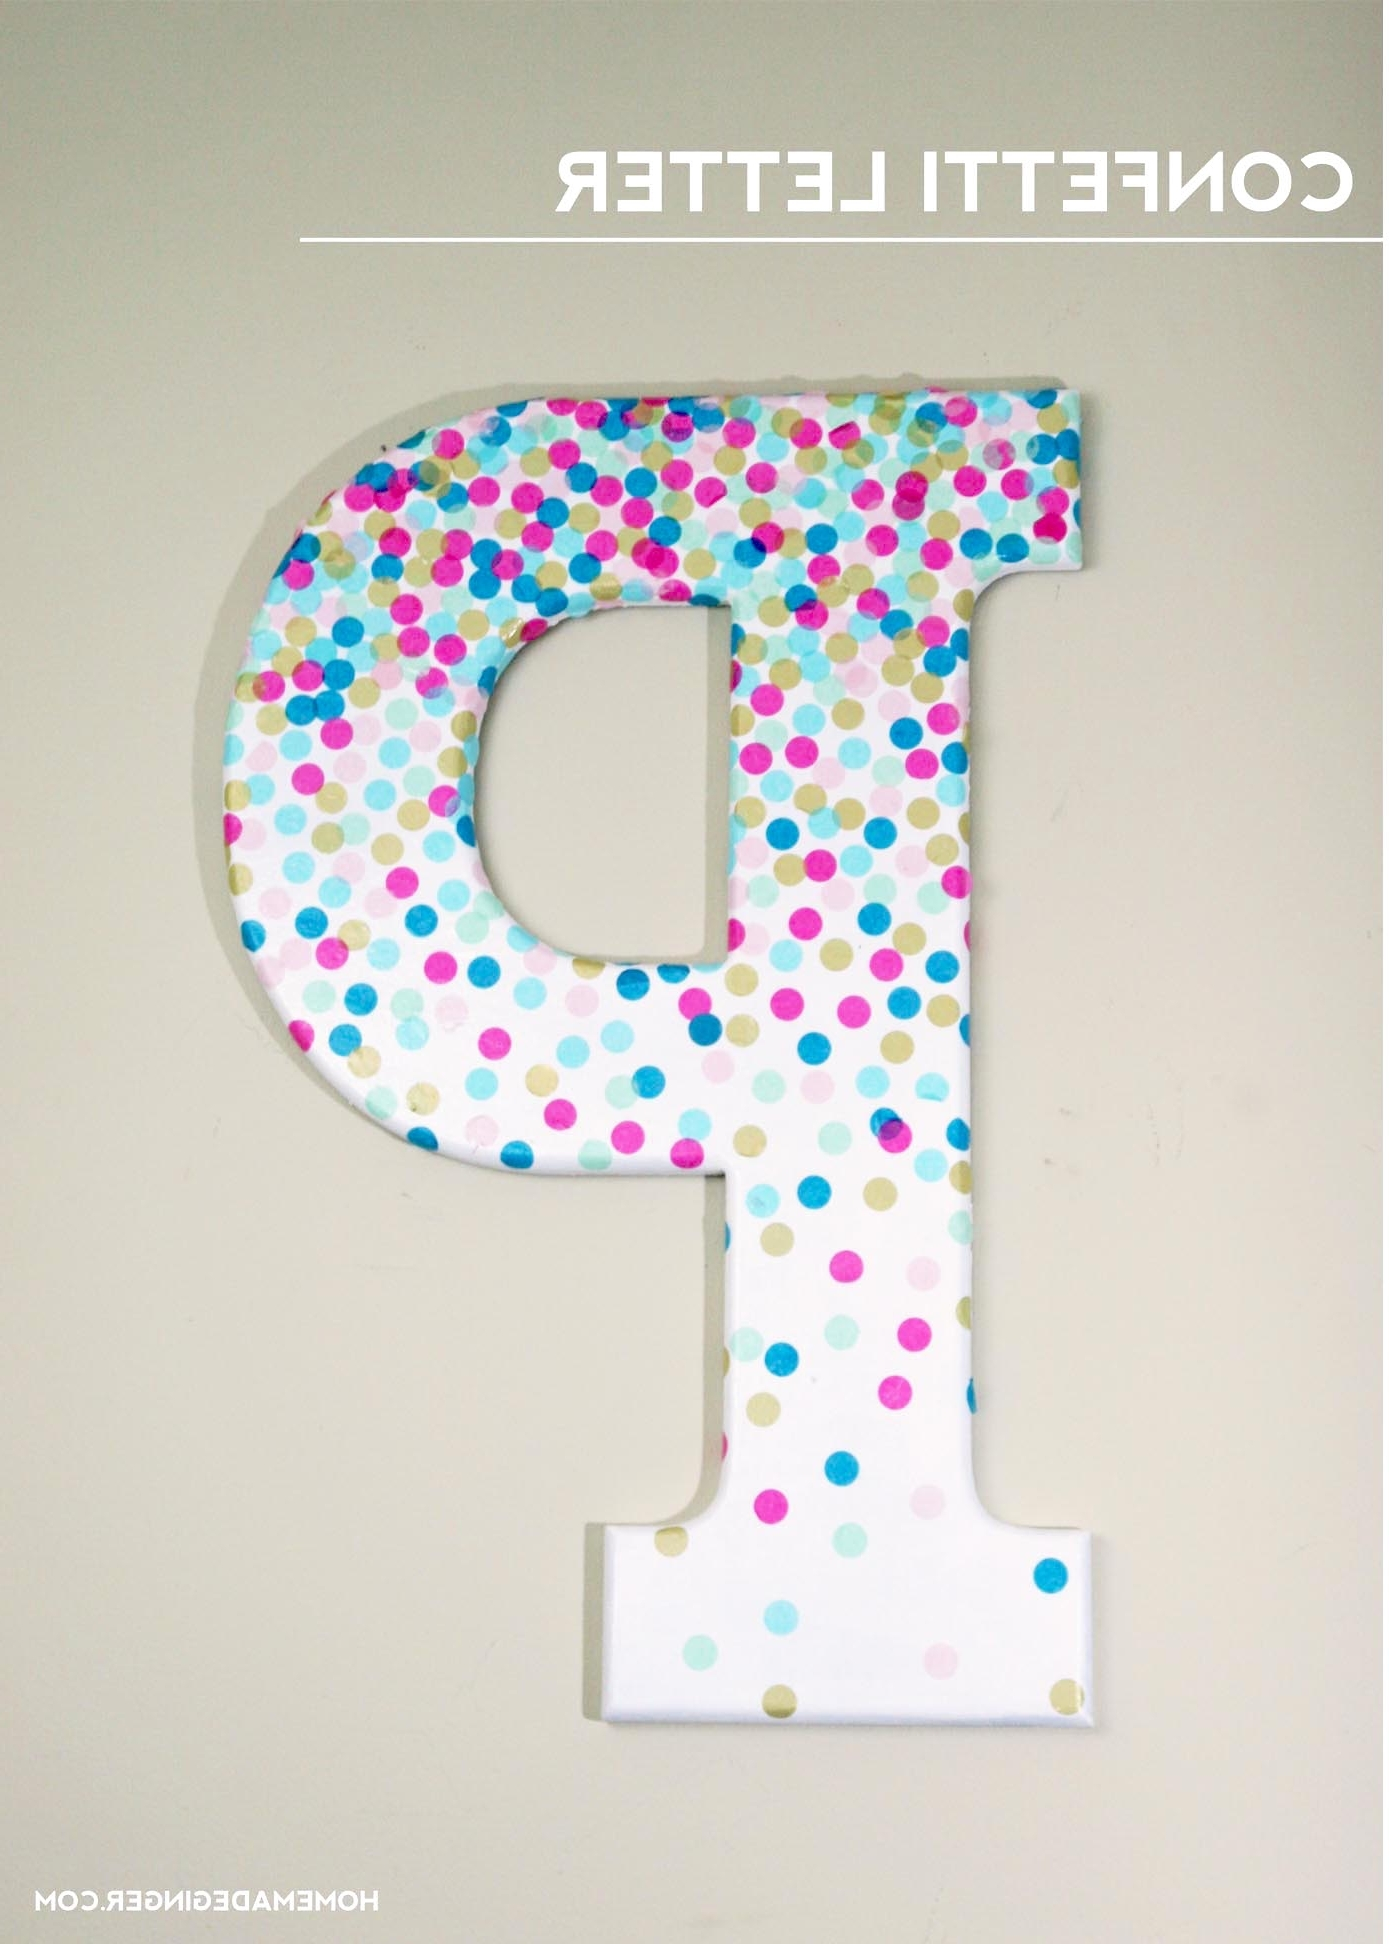 Well Known Diy Wall Art: Confetti Letter – Homemade Ginger Inside Letter Wall Art (View 7 of 20)